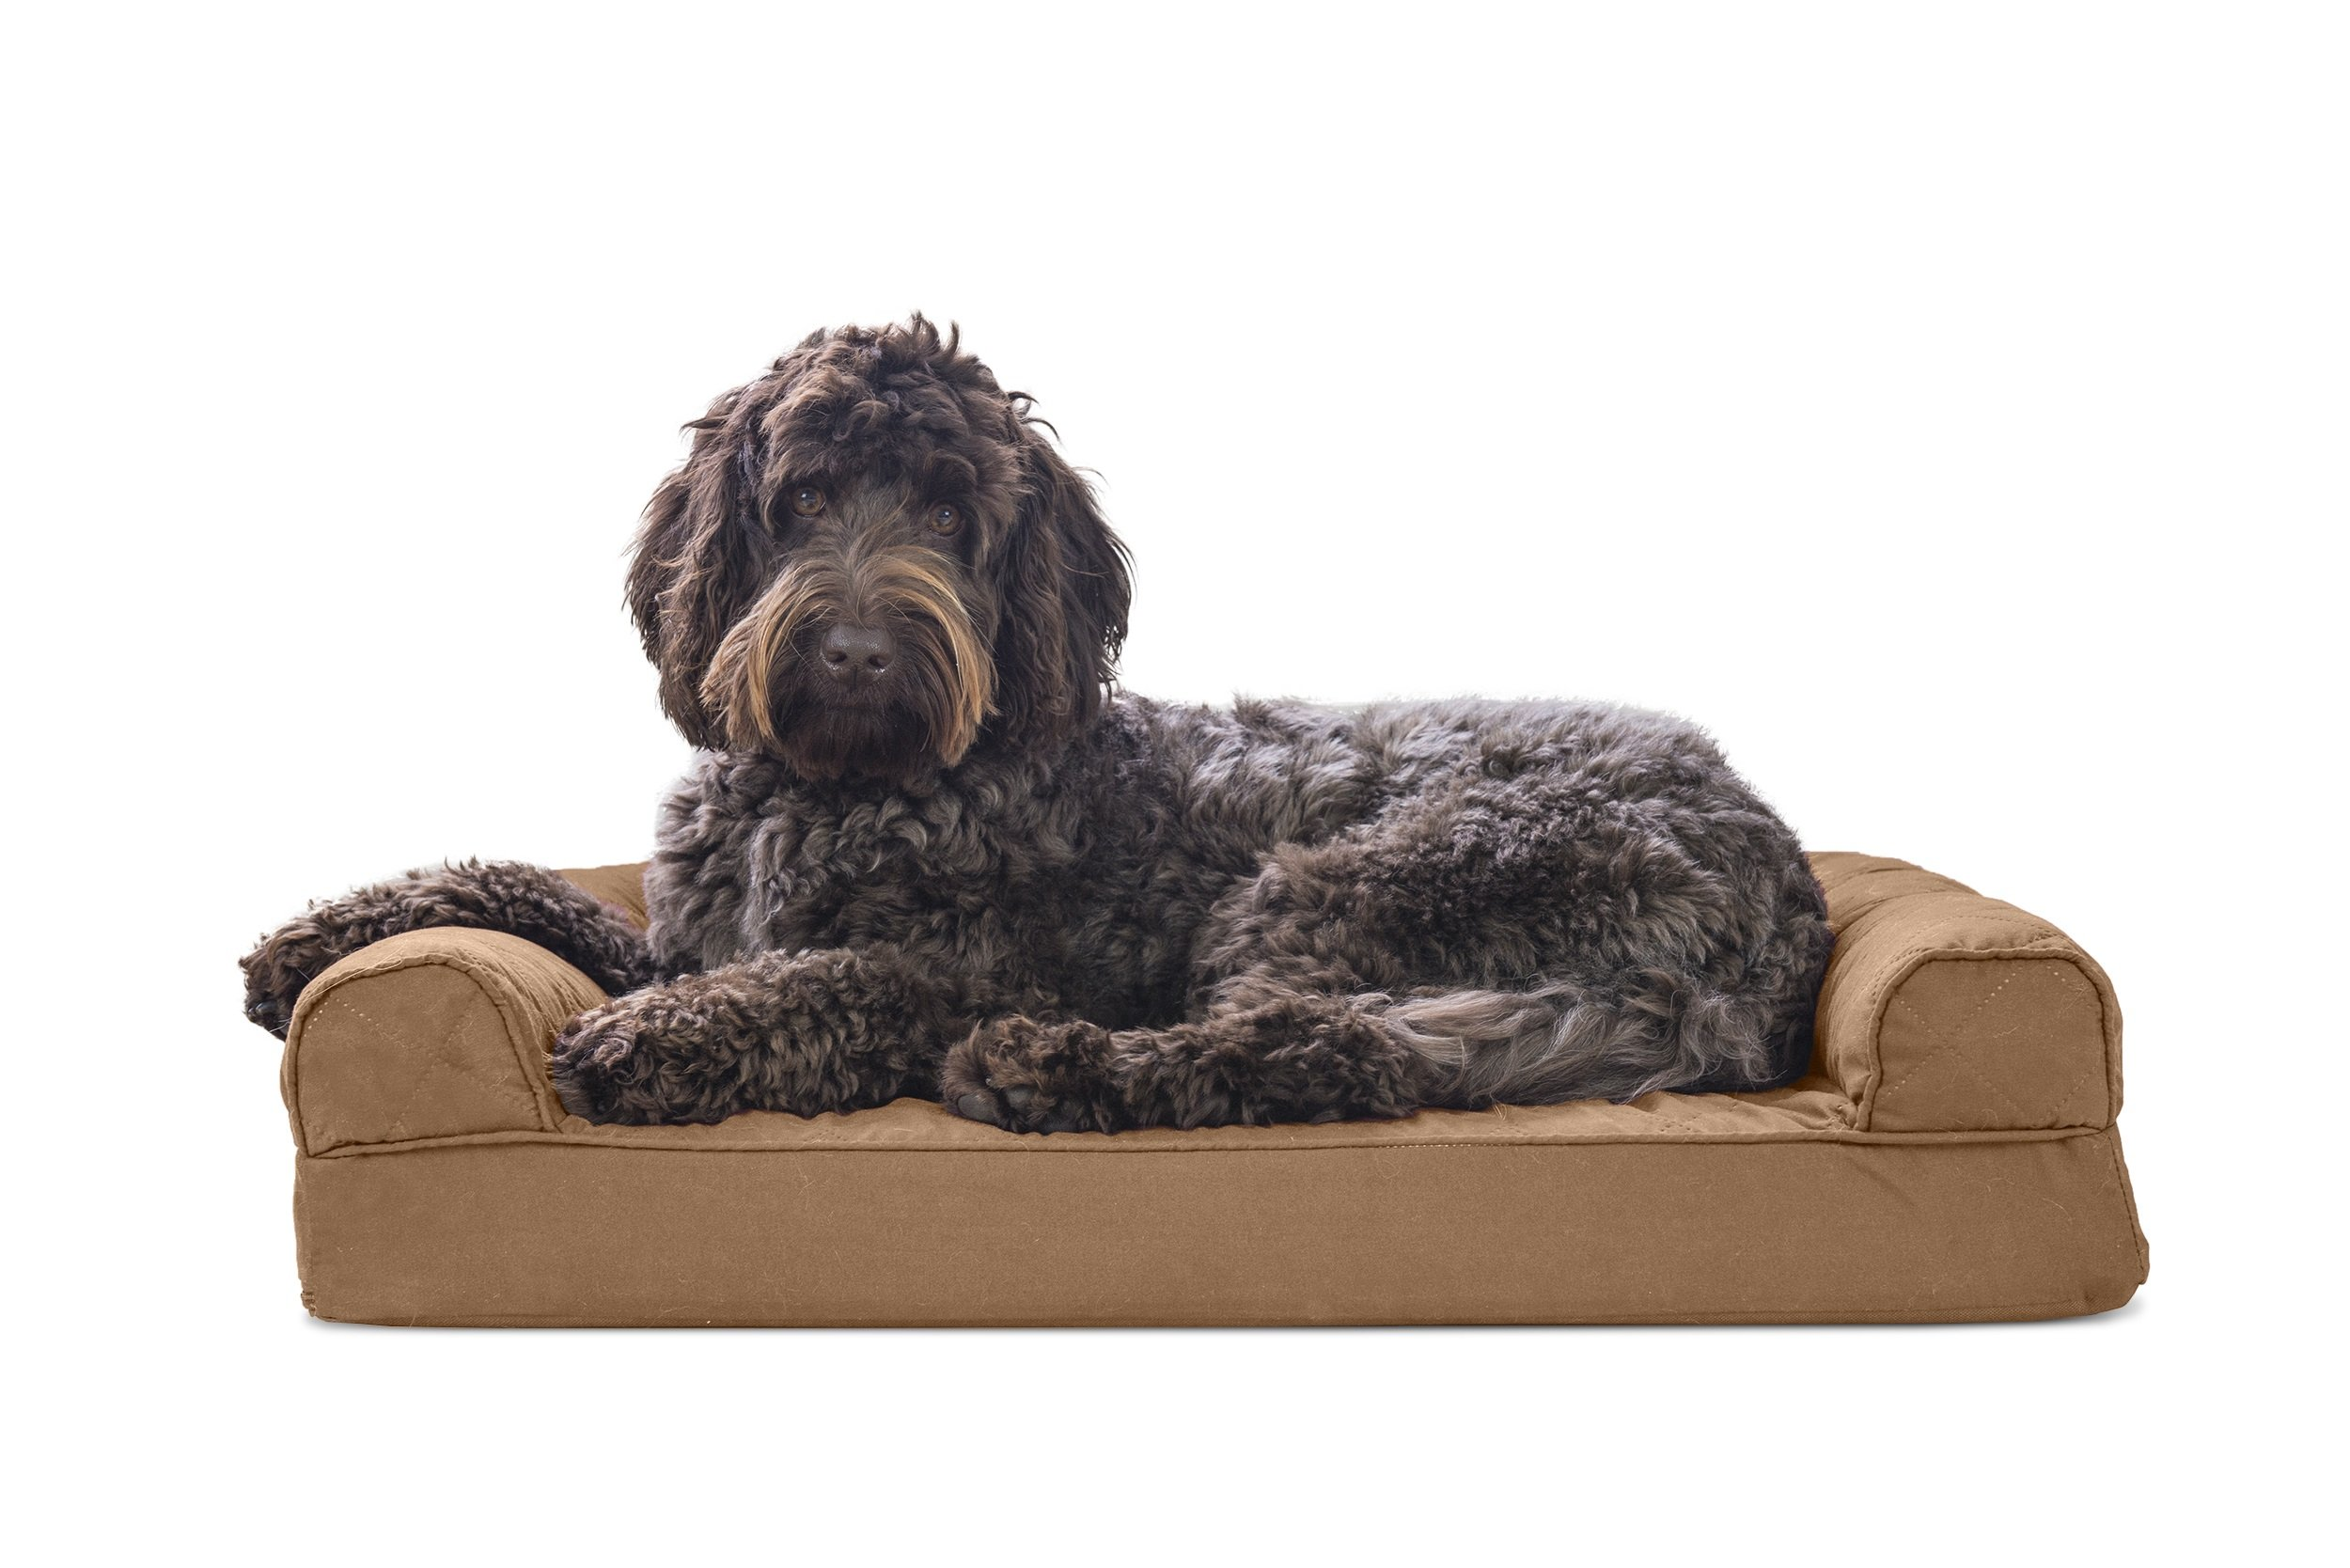 FurHaven Memory Foam Quilted Dog Couch Sofa Bed for Dogs and Cats, Toasted Brown, Medium